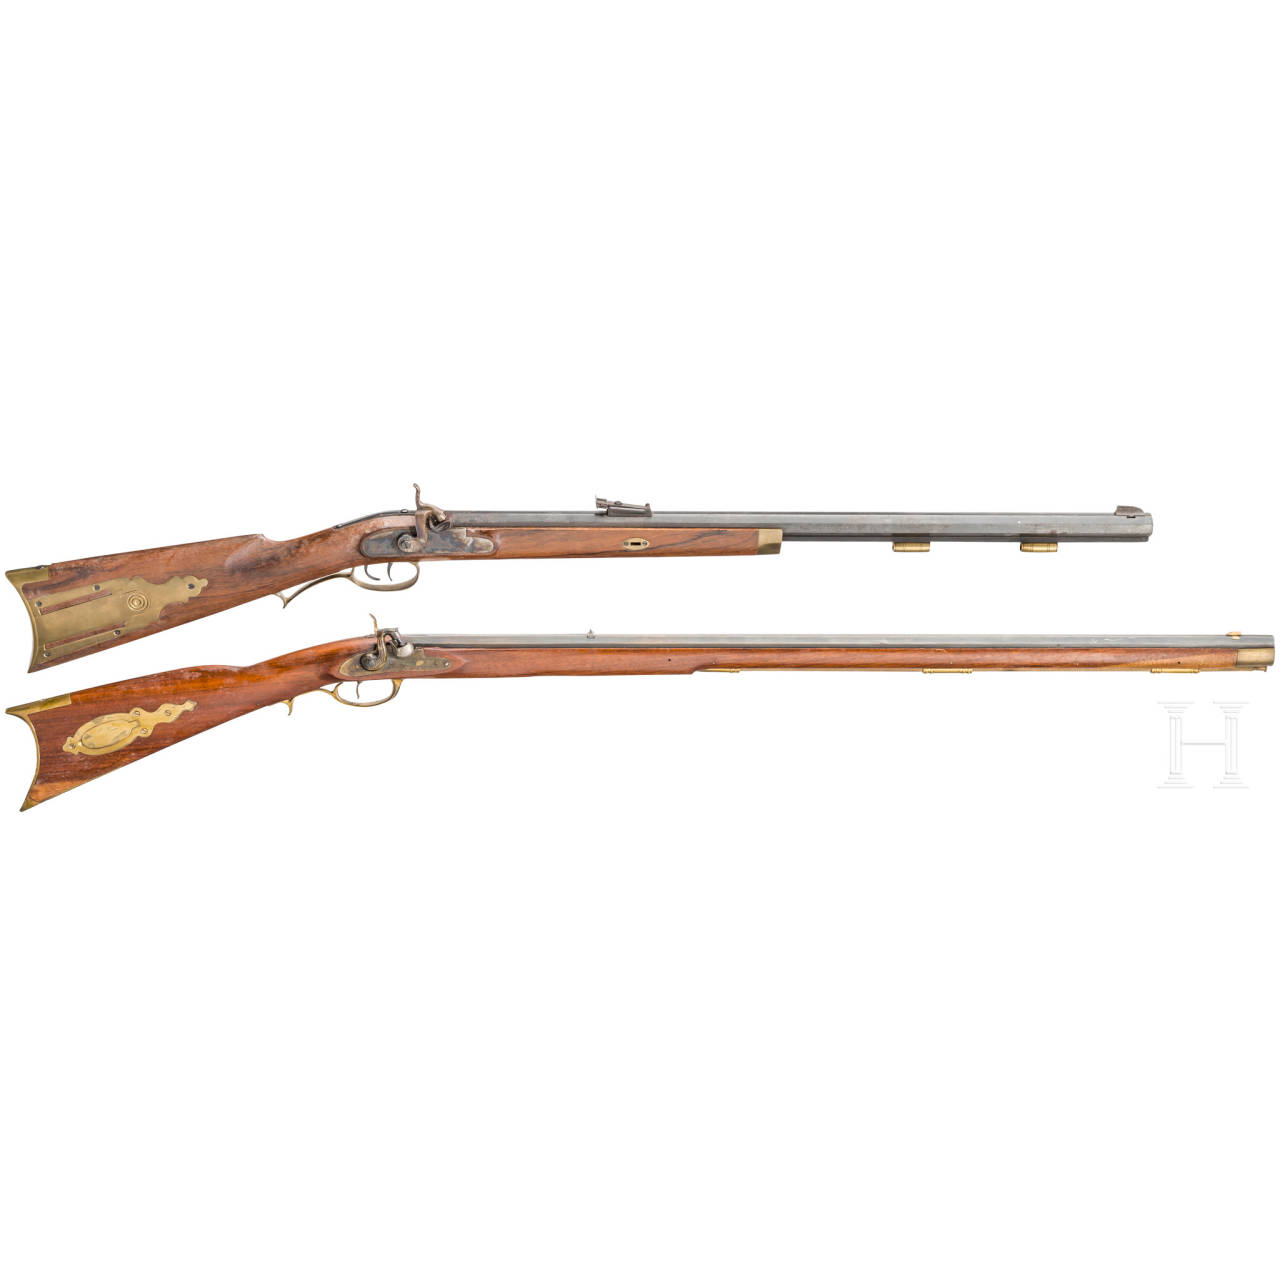 Two percussion rifles, collector's replicas